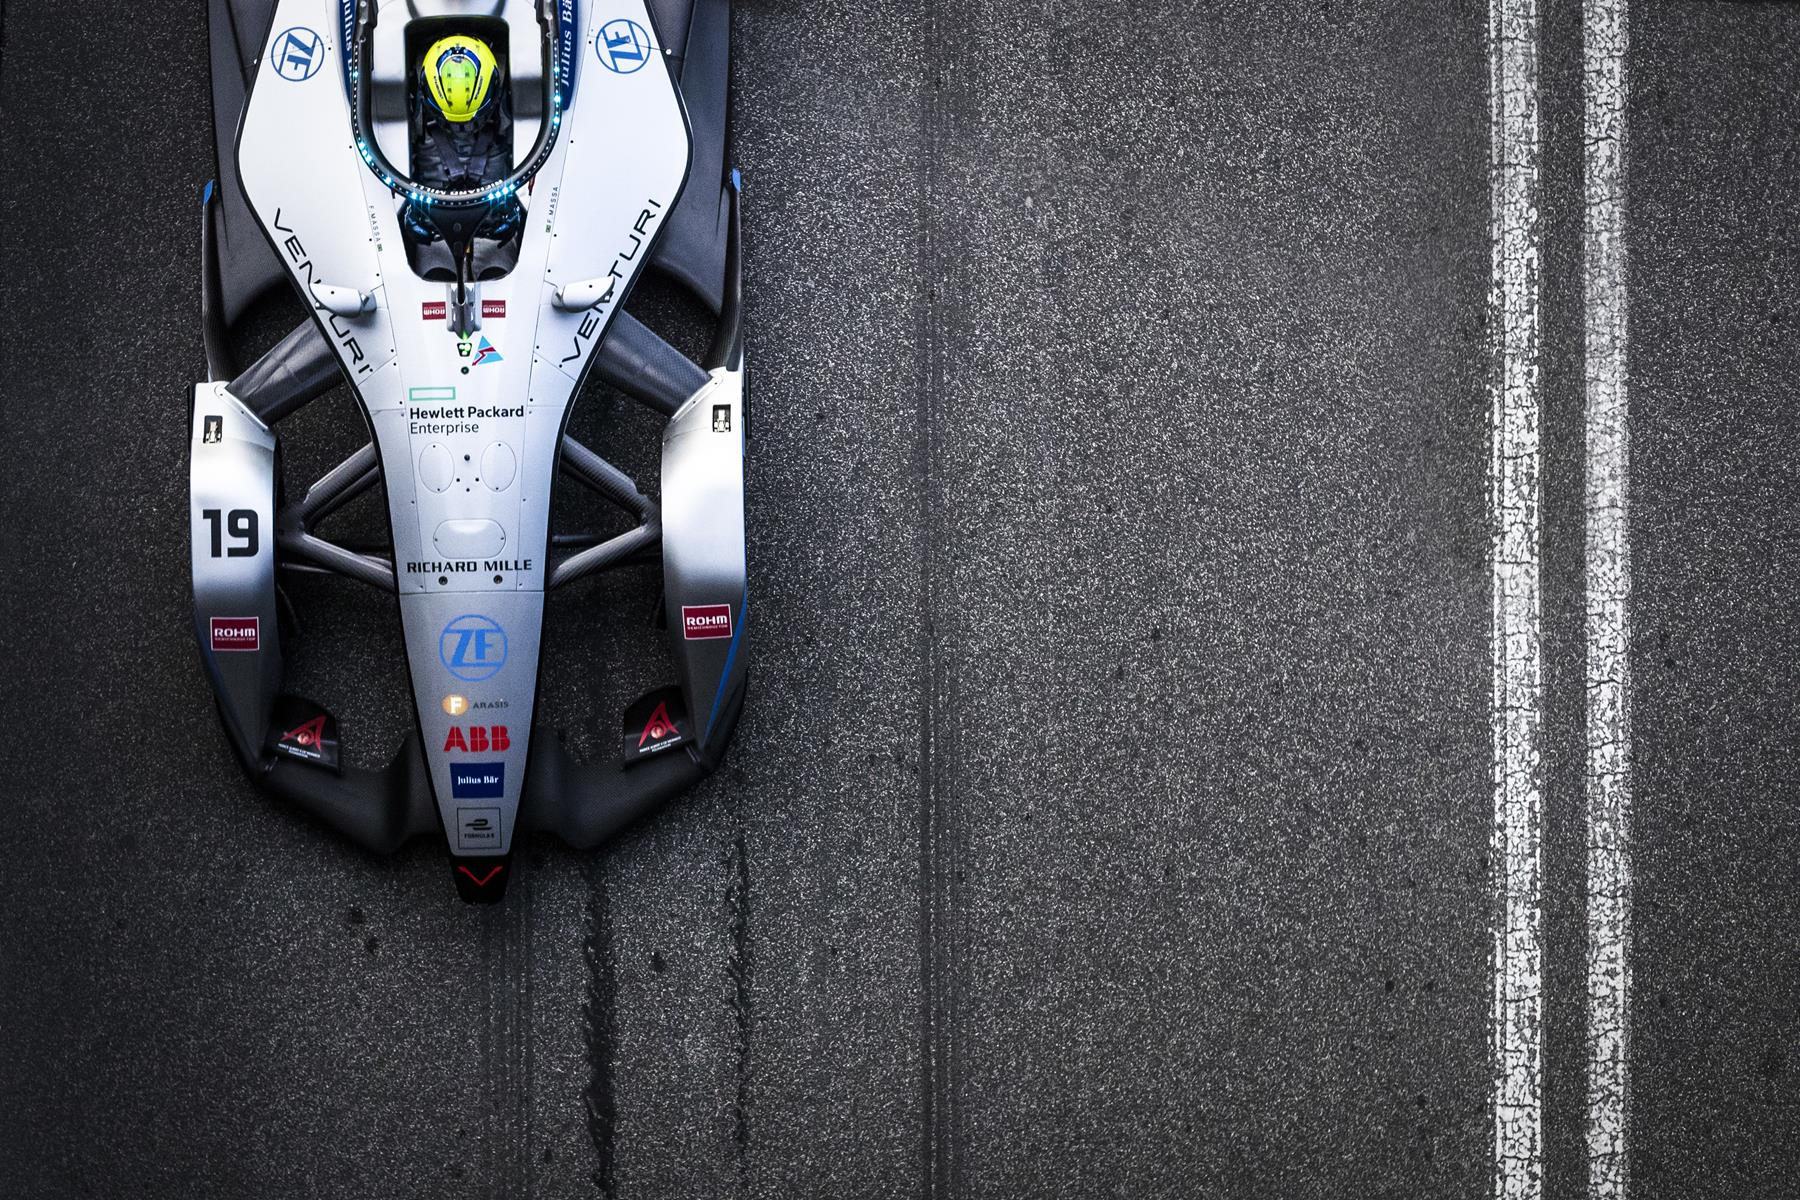 Felipe-Massa-Venturi-Car-from-above-Rome